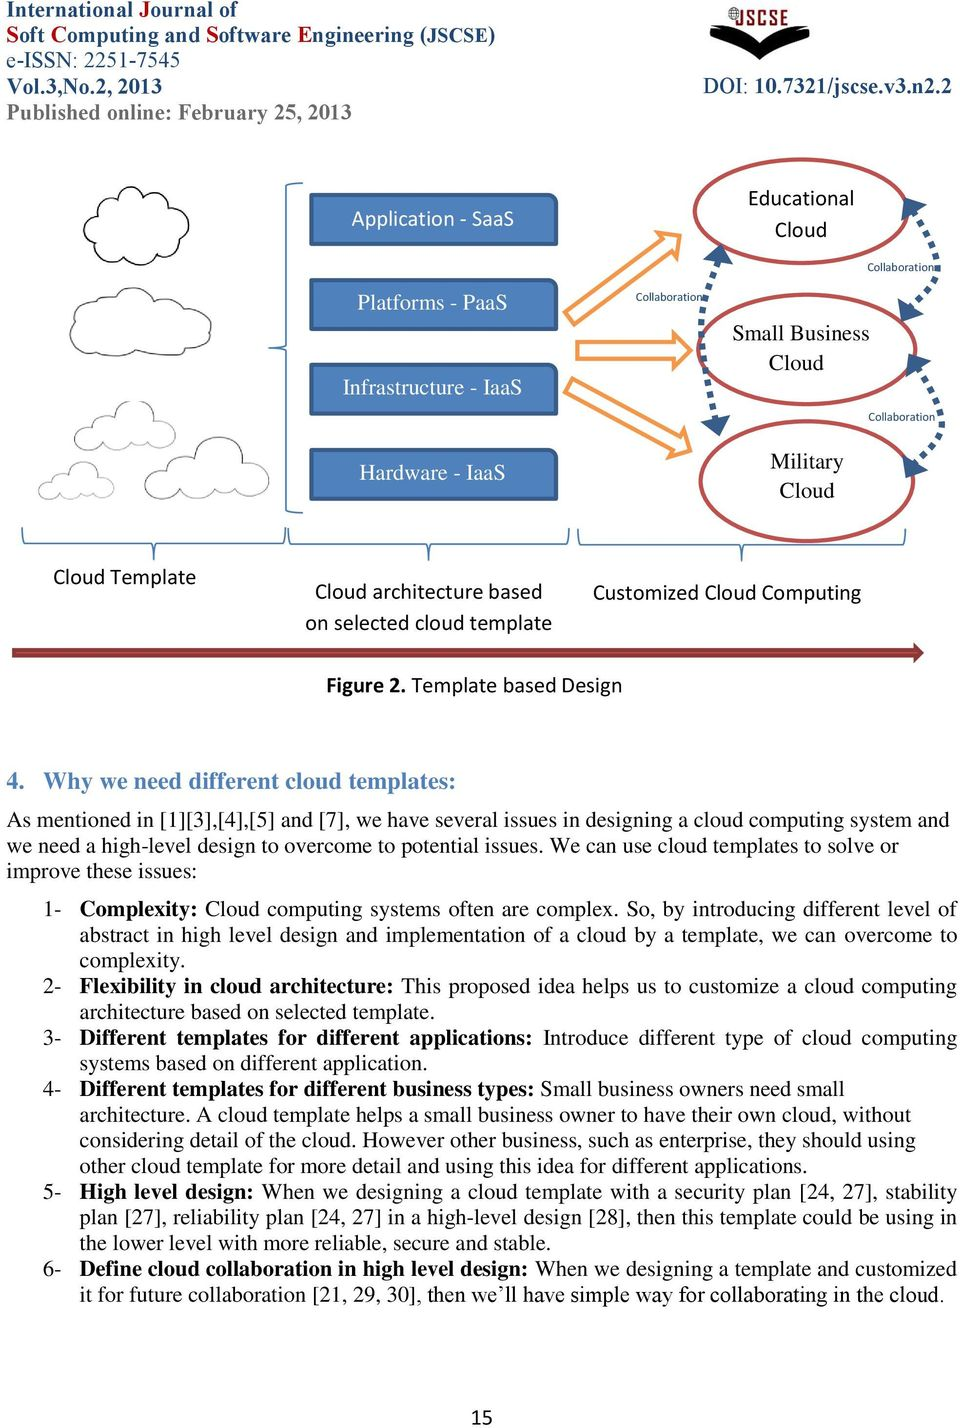 Why we need different cloud templates: As mentioned in [1][3],[4],[5] and [7], we have several issues in designing a cloud computing system and we need a high-level design to overcome to potential